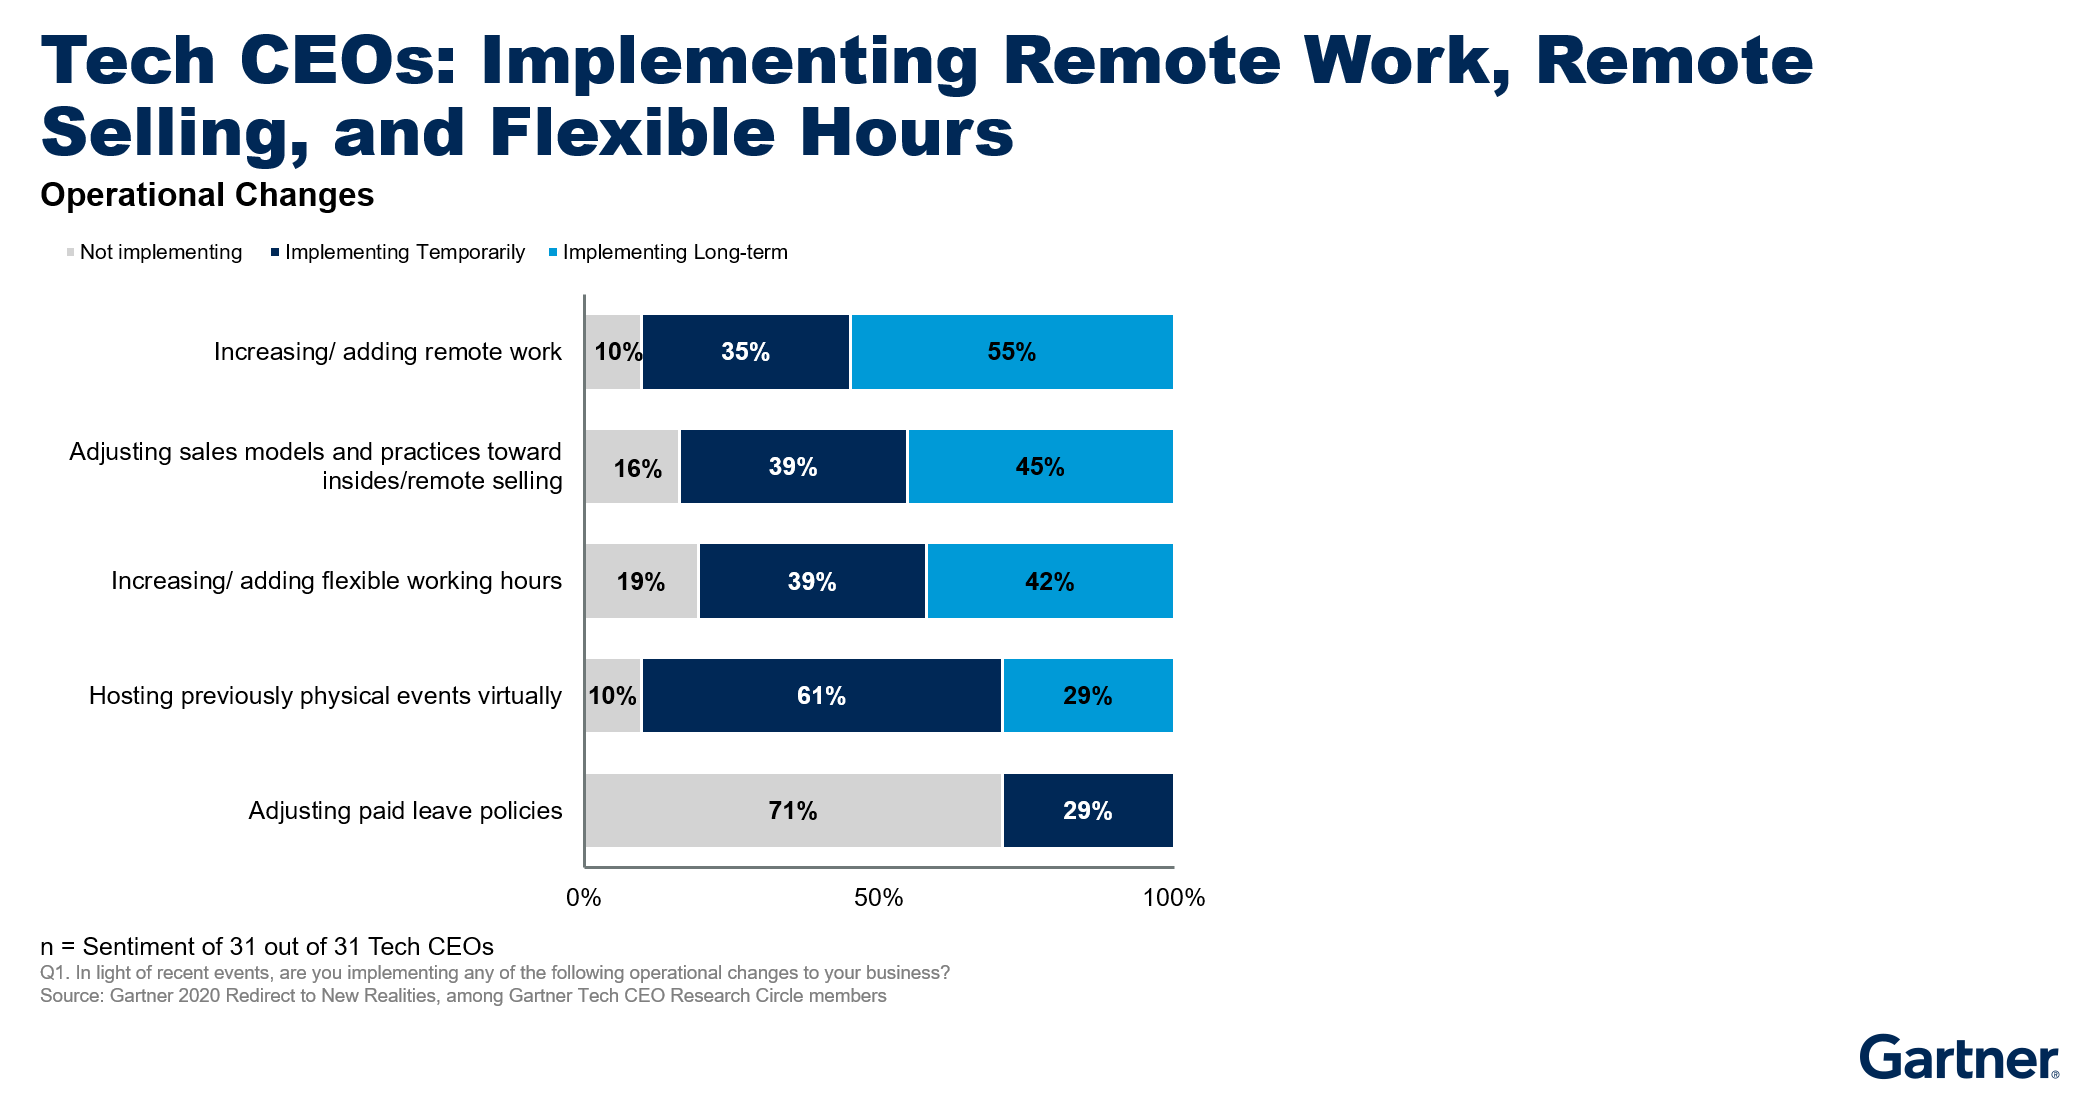 Figure 4. Tech CEOs: Implementing Remote Work, Remote Selling, and Flexible Hours